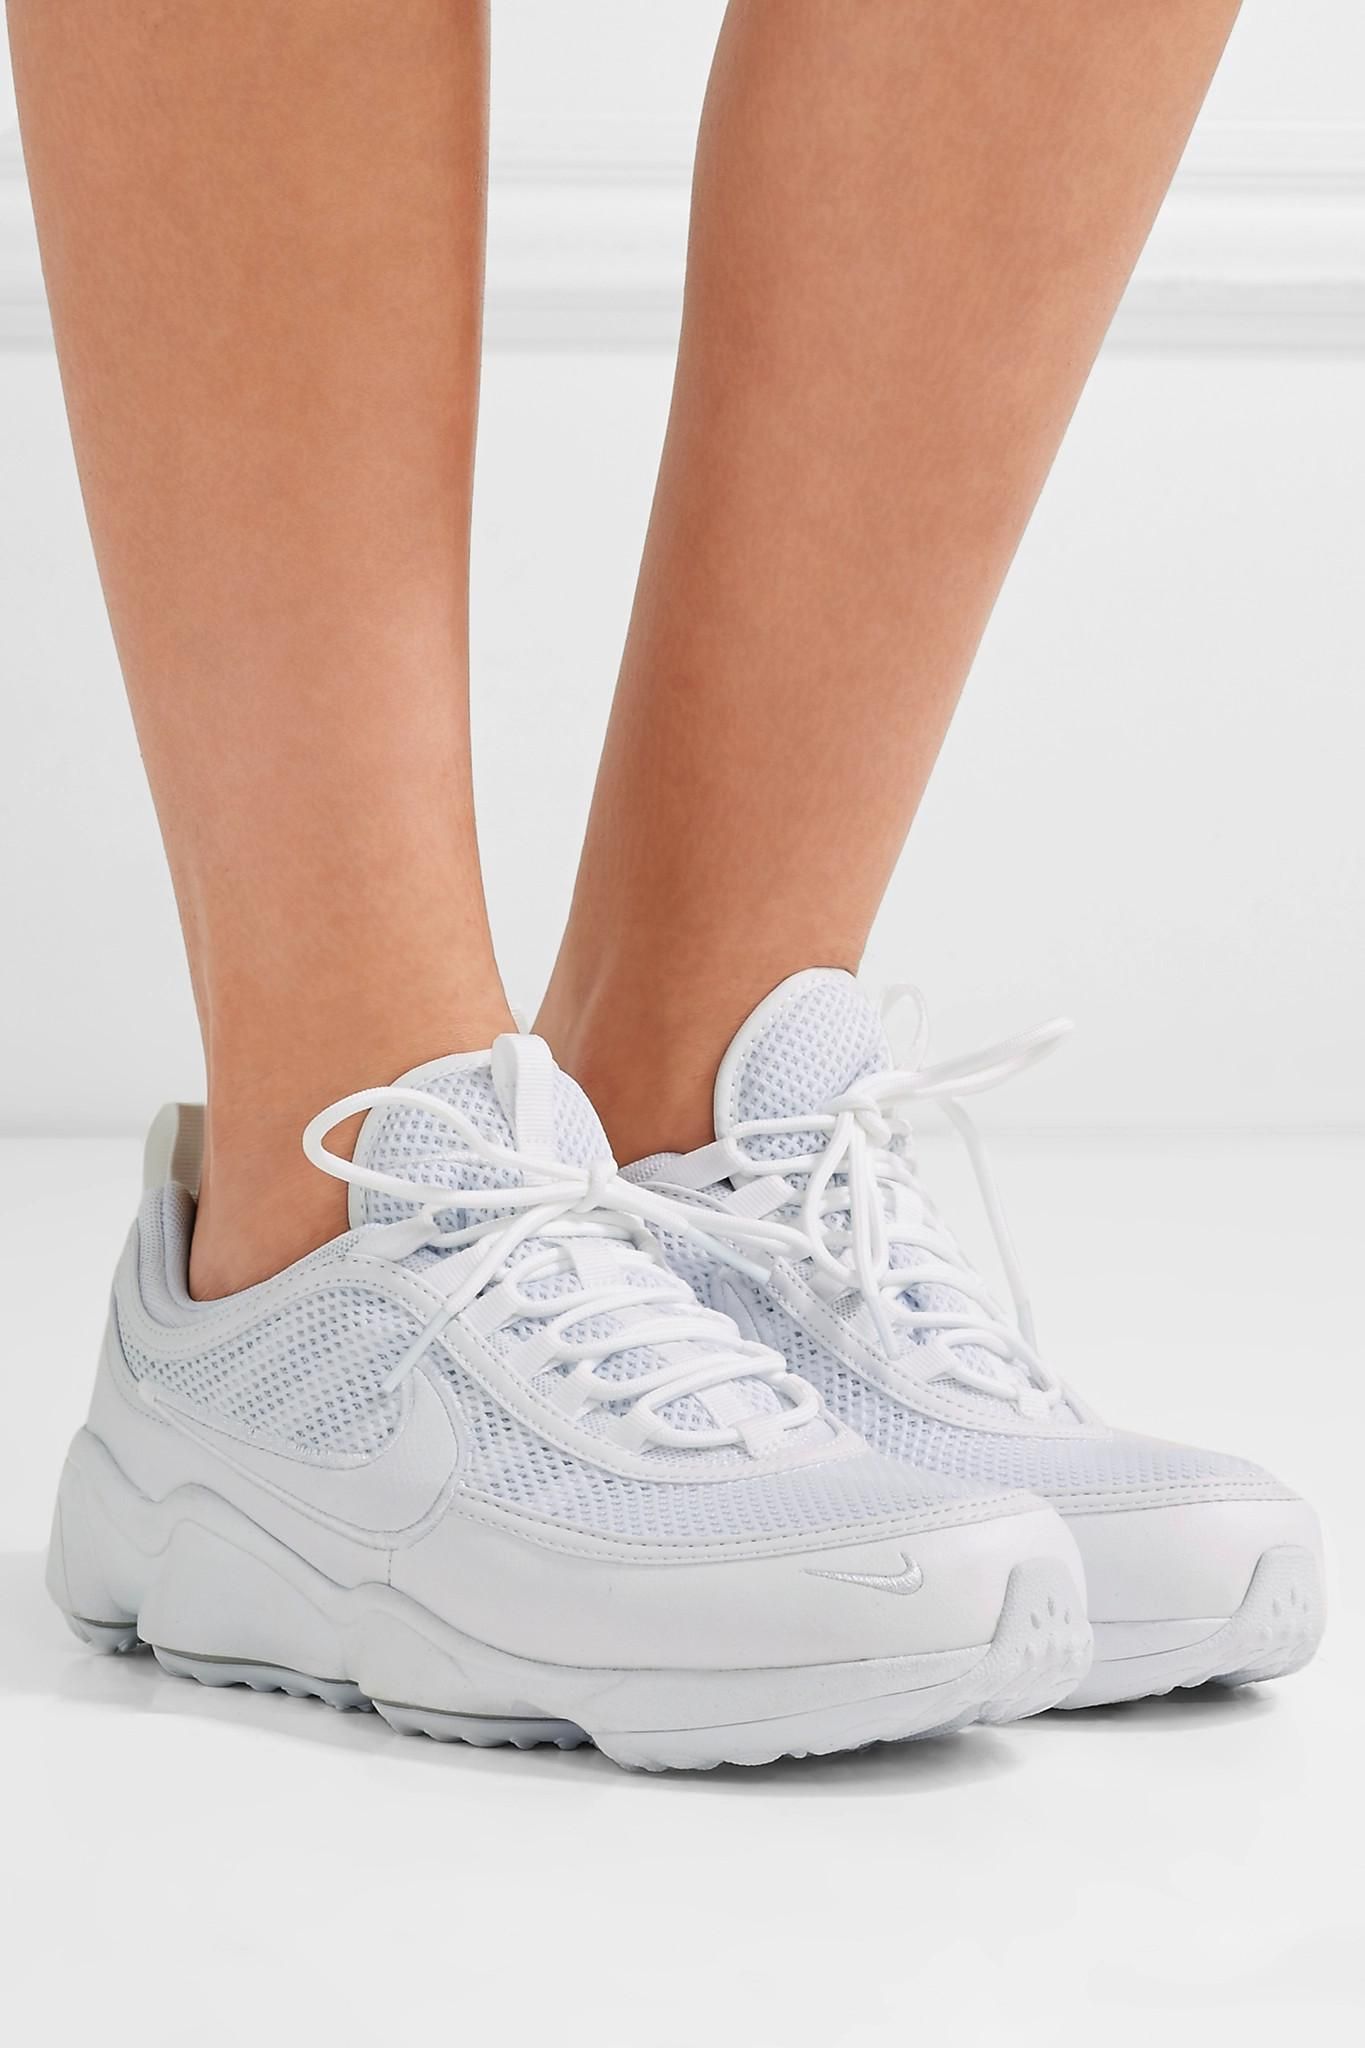 14665a5c4ce5 Lyst - Nike Air Zoom Spiridon Ultra Leather And Mesh Sneakers in White